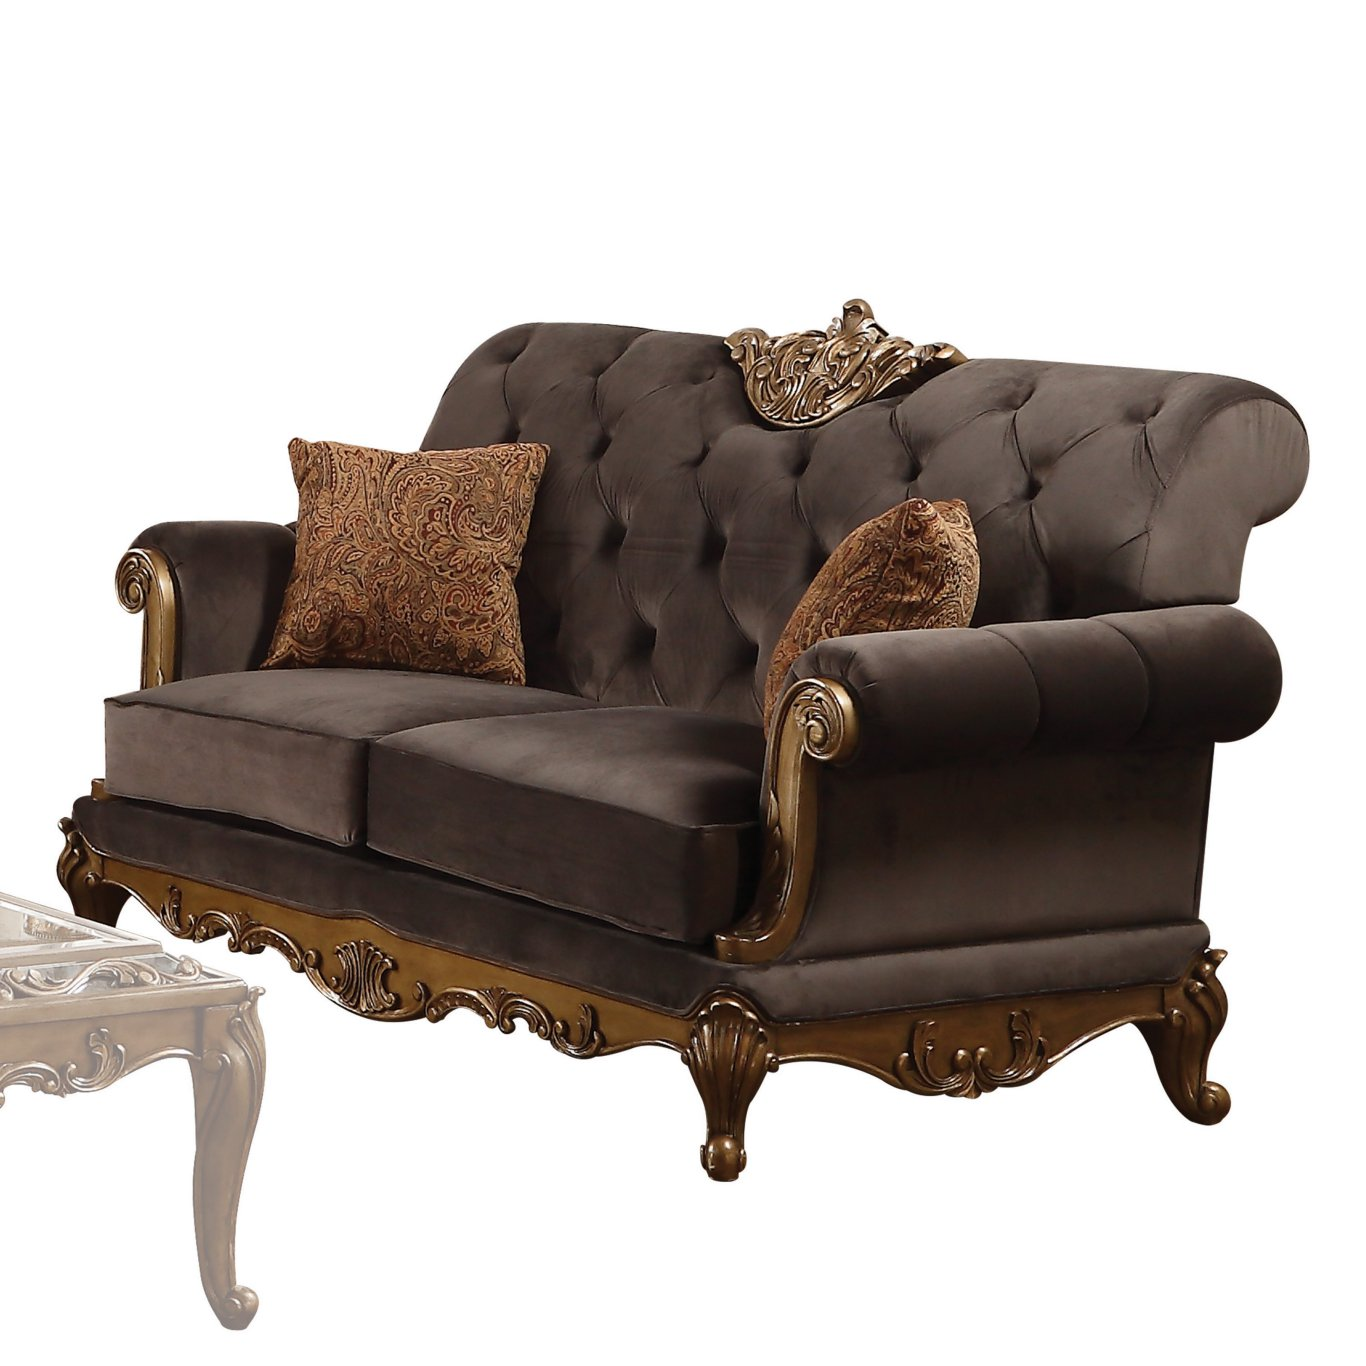 Acme 53696 Orianne Gold And Charcoal Fabric Finish Loveseat